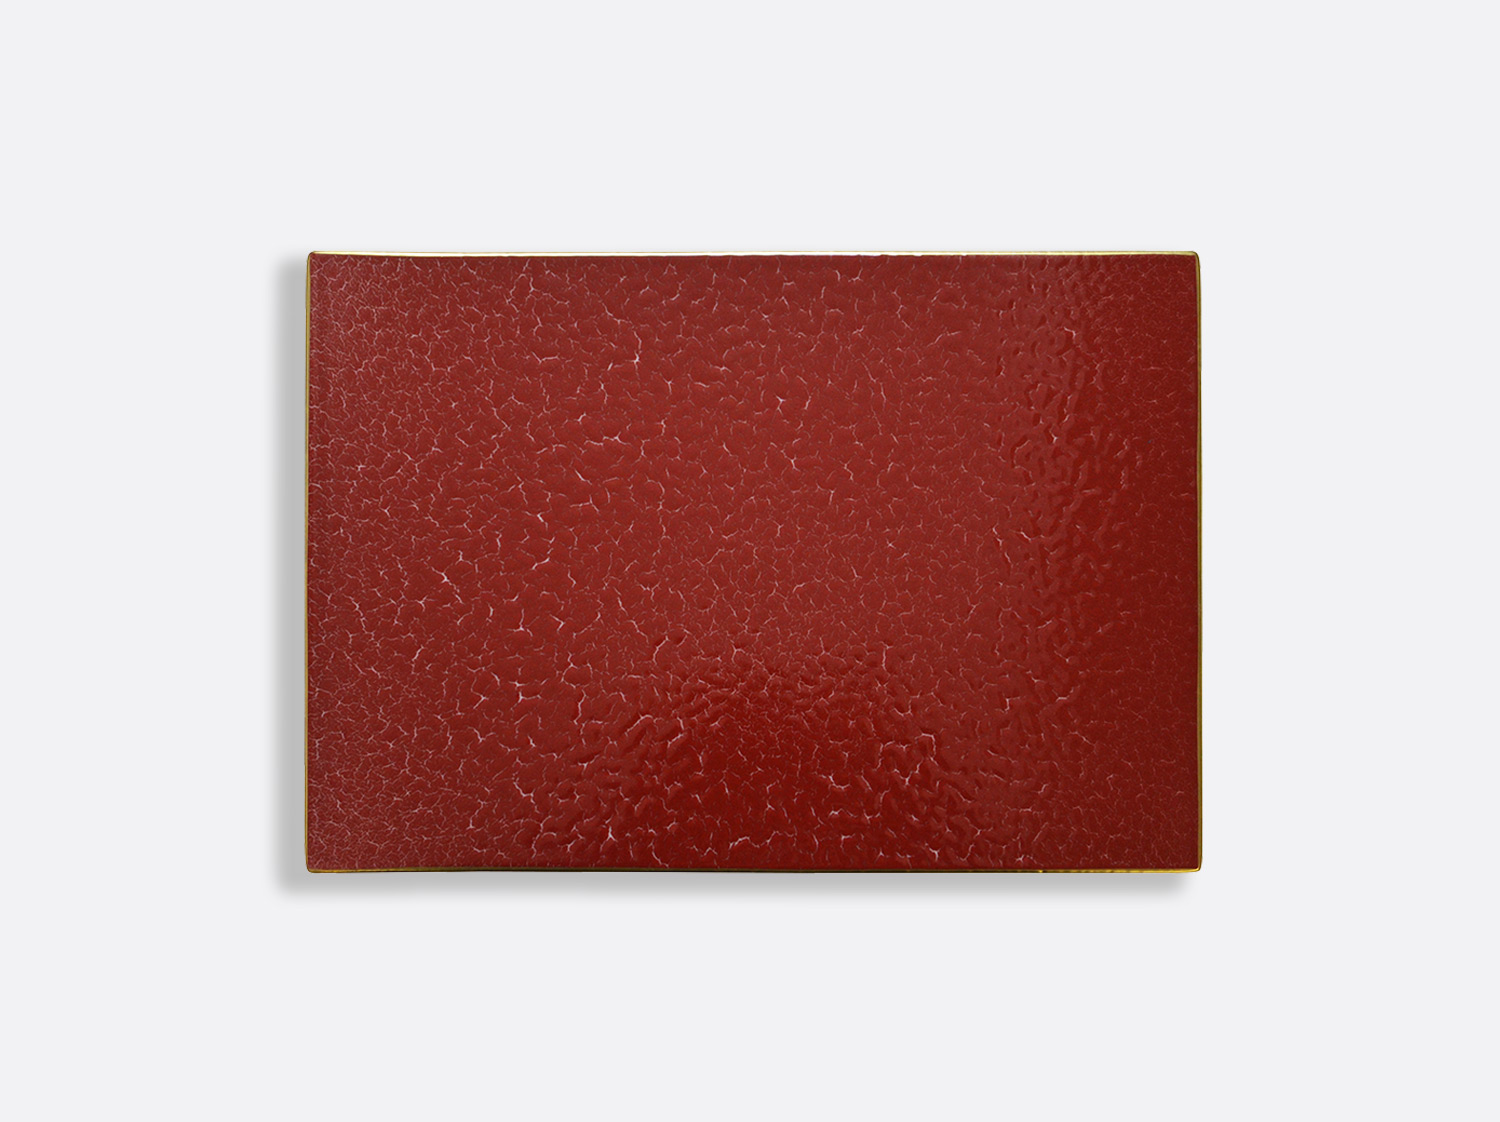 Plateau rectangulaire 27 x 19 cm en porcelaine de la collection ROUGE EMPEREUR Bernardaud